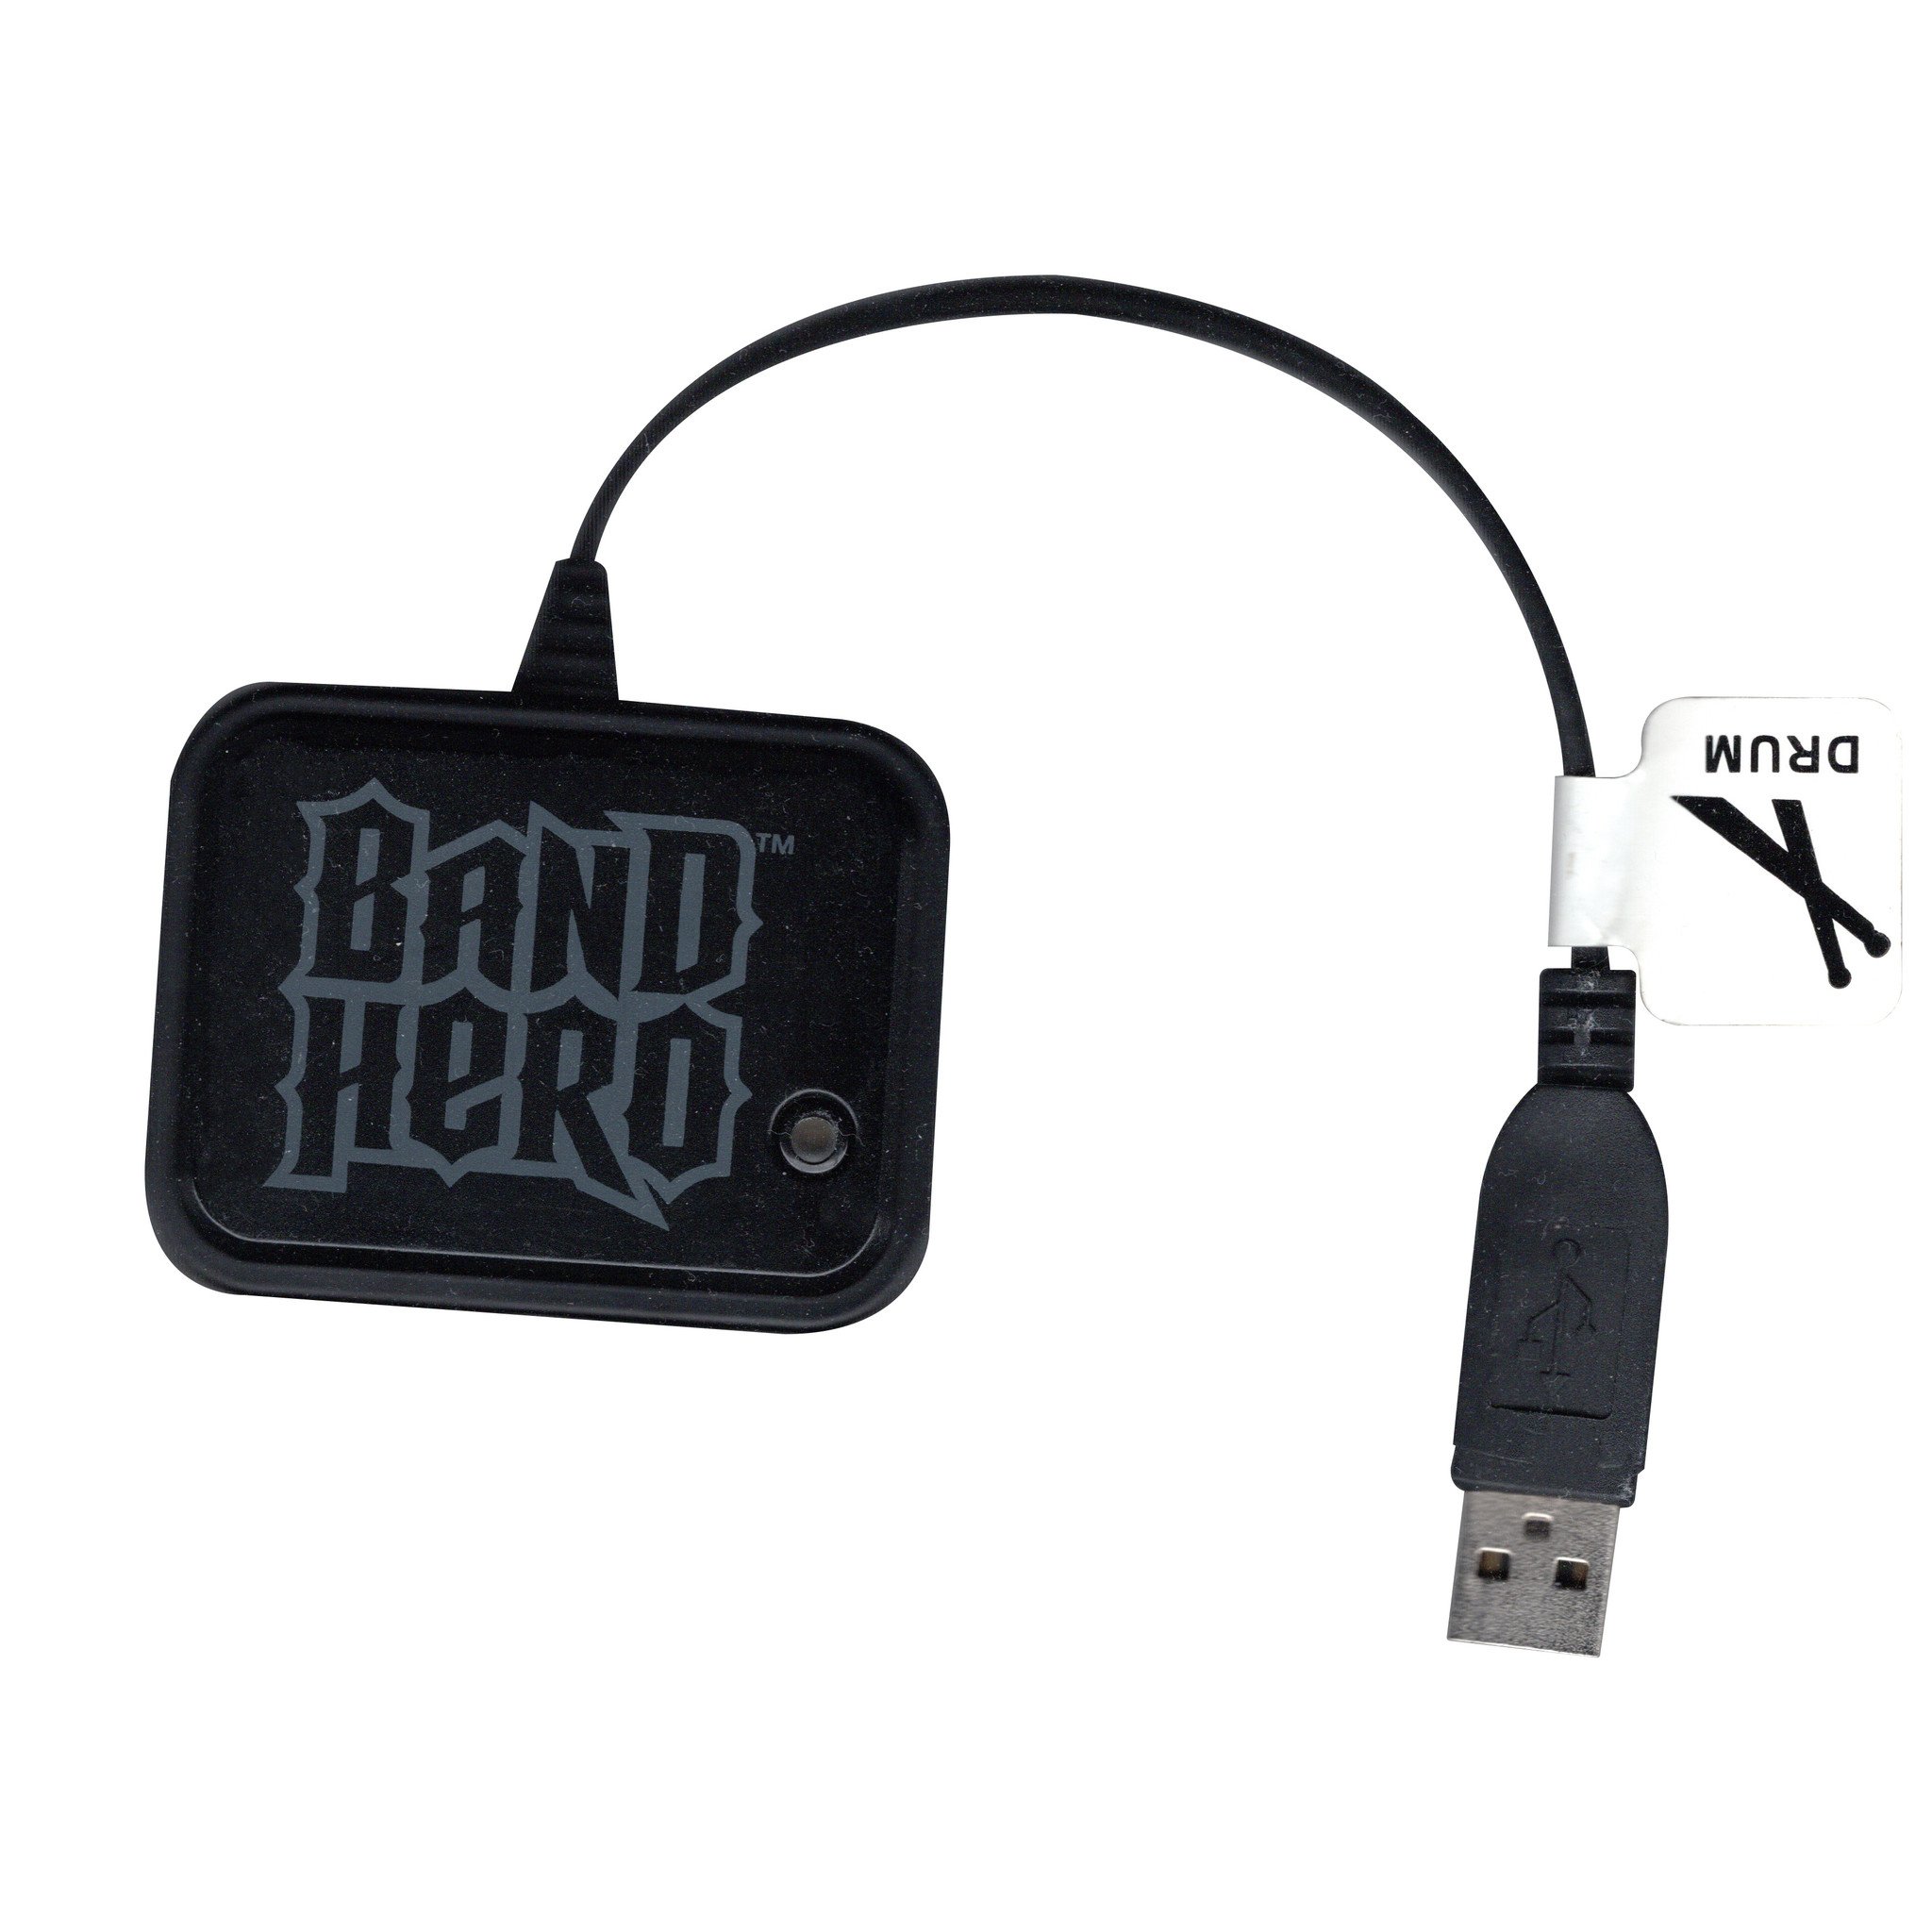 Playstation 3 - Band Hero - Wireless Drum Kit Dongle / Receiver